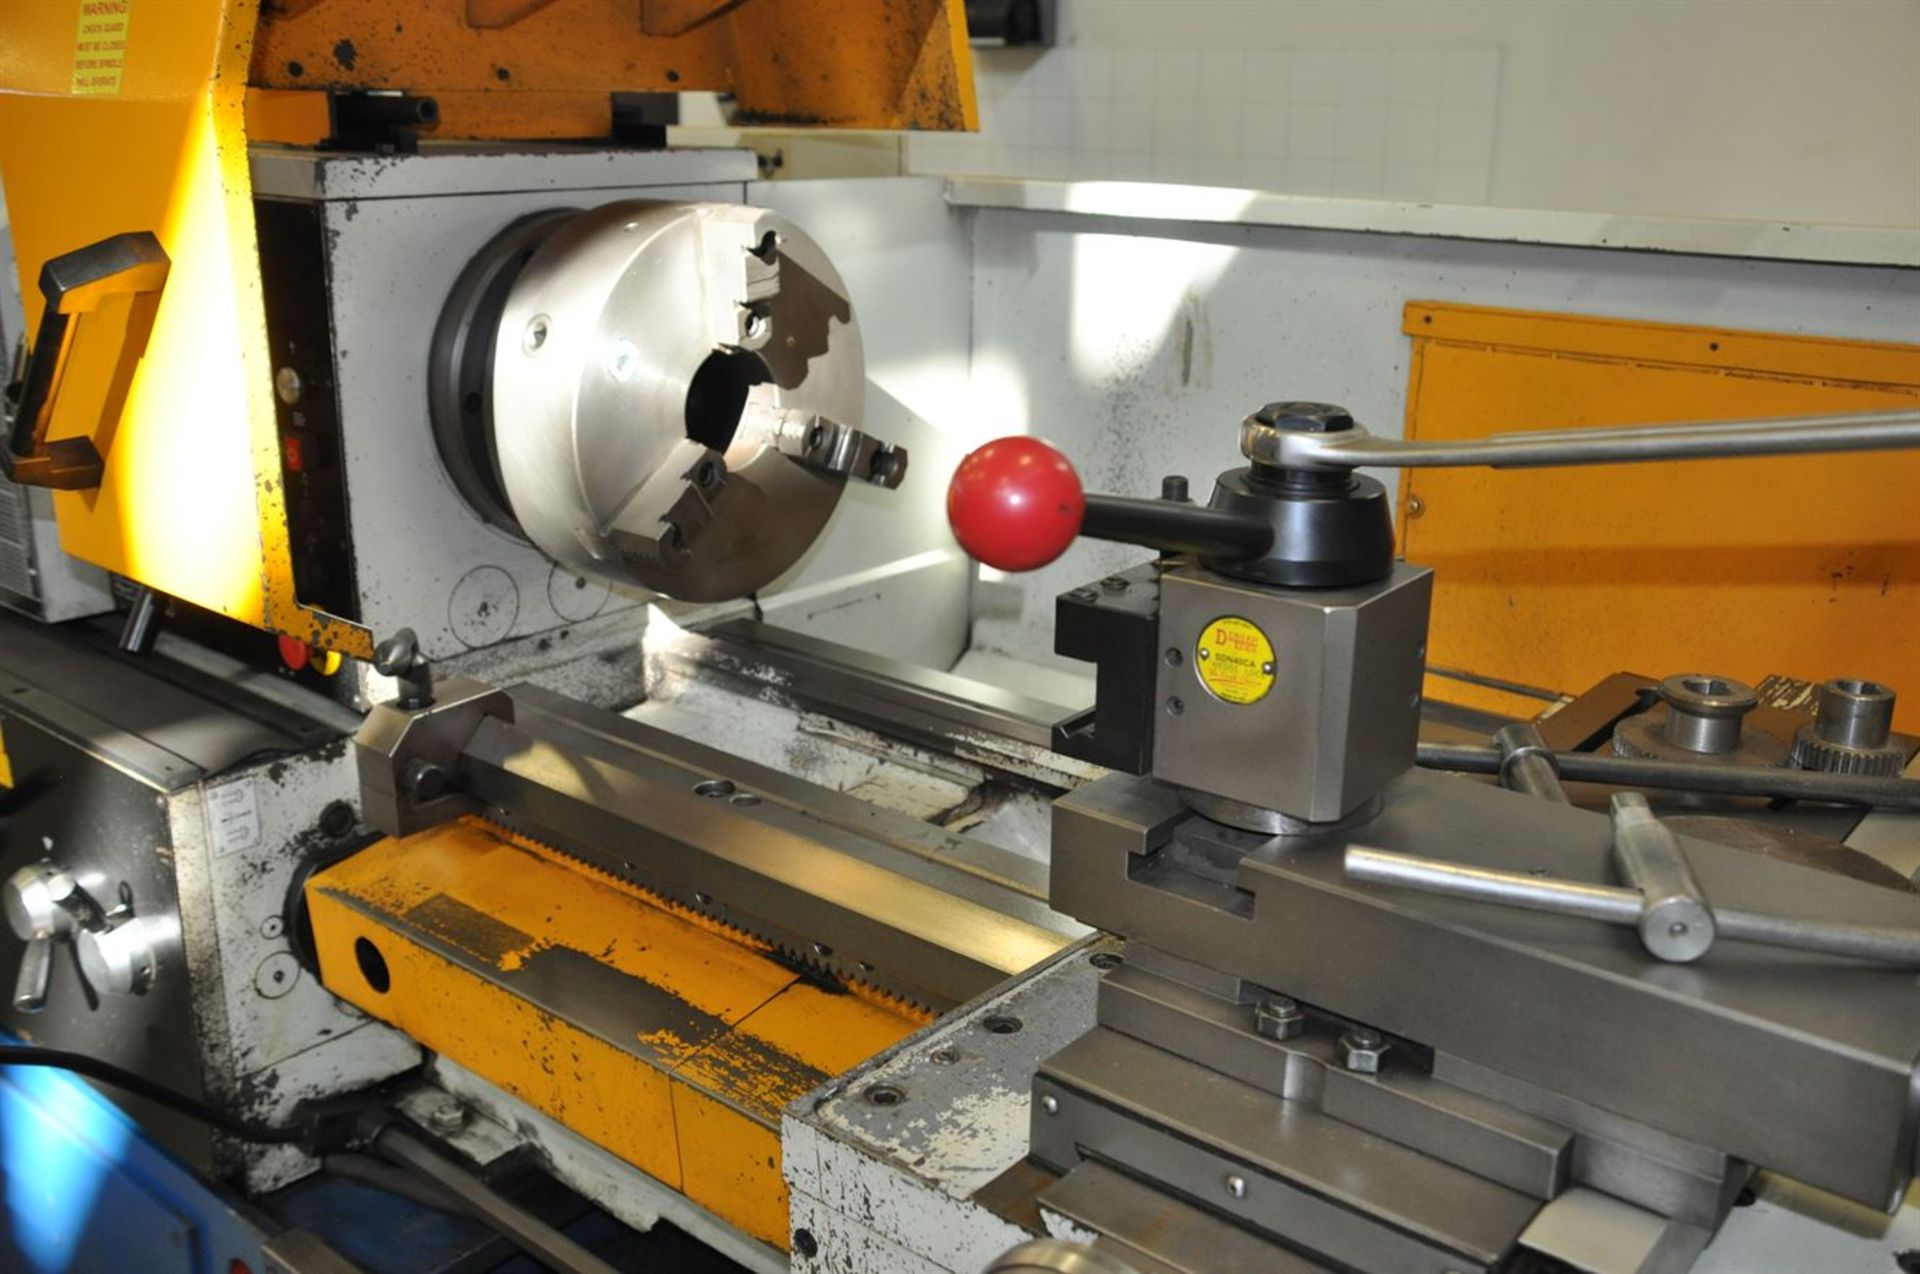 2012 SUMMIT 20X80B Gap Bed Engine Lathe, s/n 8052, w/ Taper Attachment, Quick Change Tool Post, - Image 4 of 5